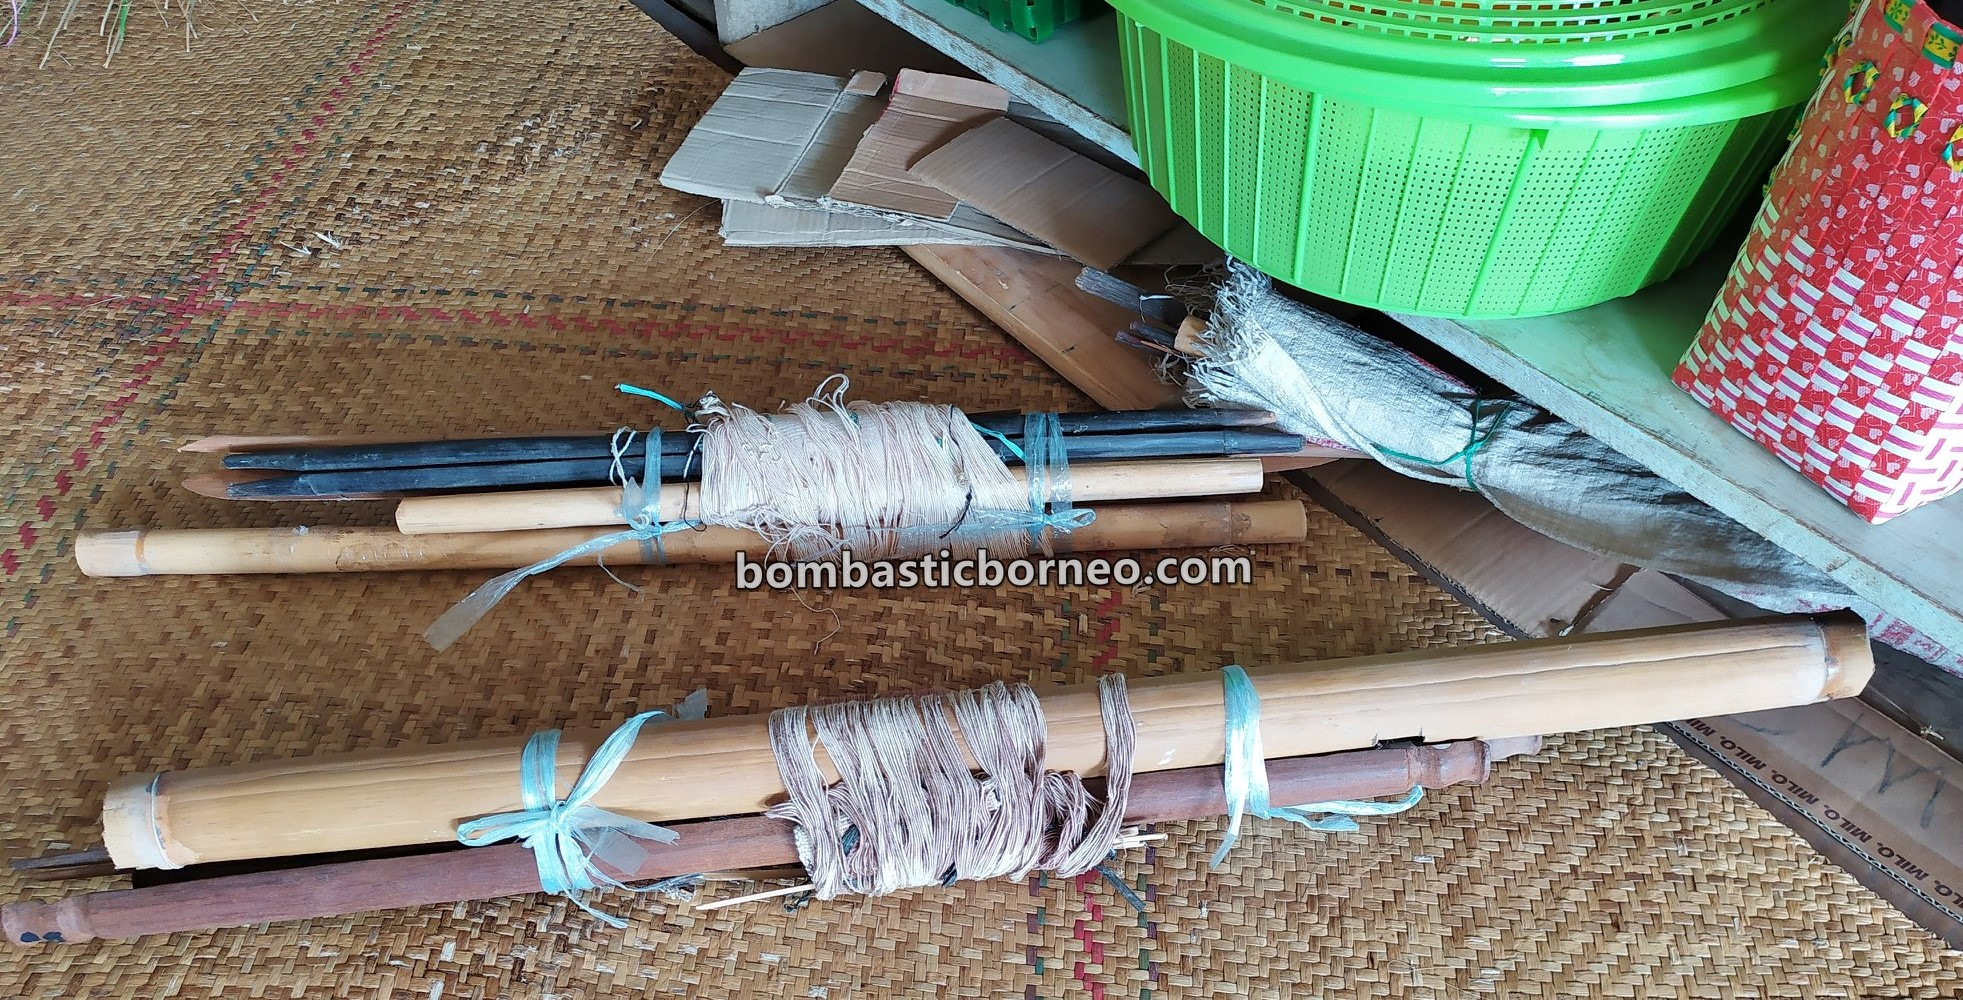 Kerajinan, Crafts, authentic, traditional, Indonesia, North Kalimantan, Nunukan, Interior village, native, tribal, travel guide, Cross Border, Borneo, 婆罗洲北加里曼丹, 弄达耶族手工艺品